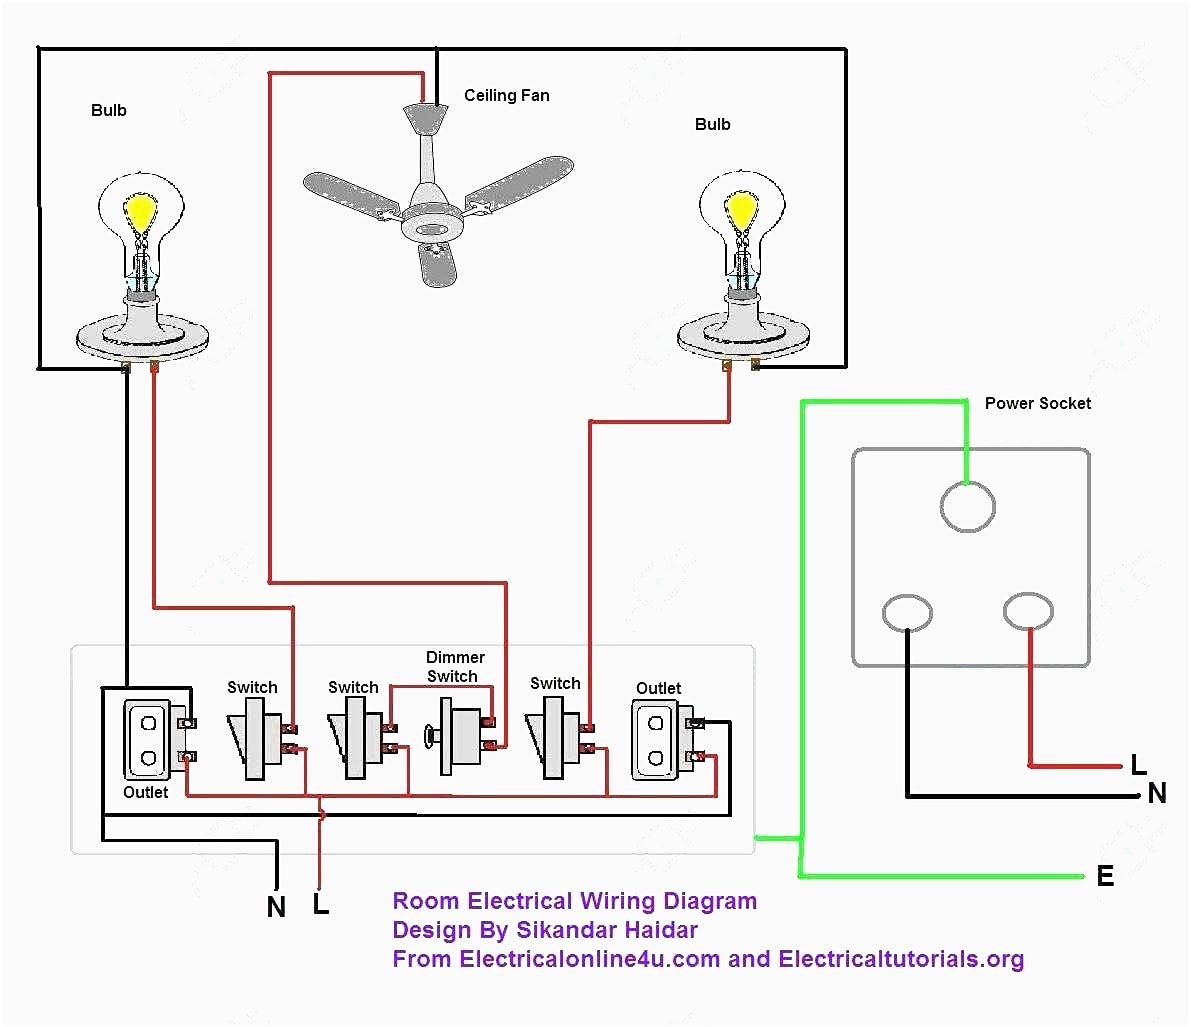 Electric House Wiring Diagram Also Residential Electrical ... on